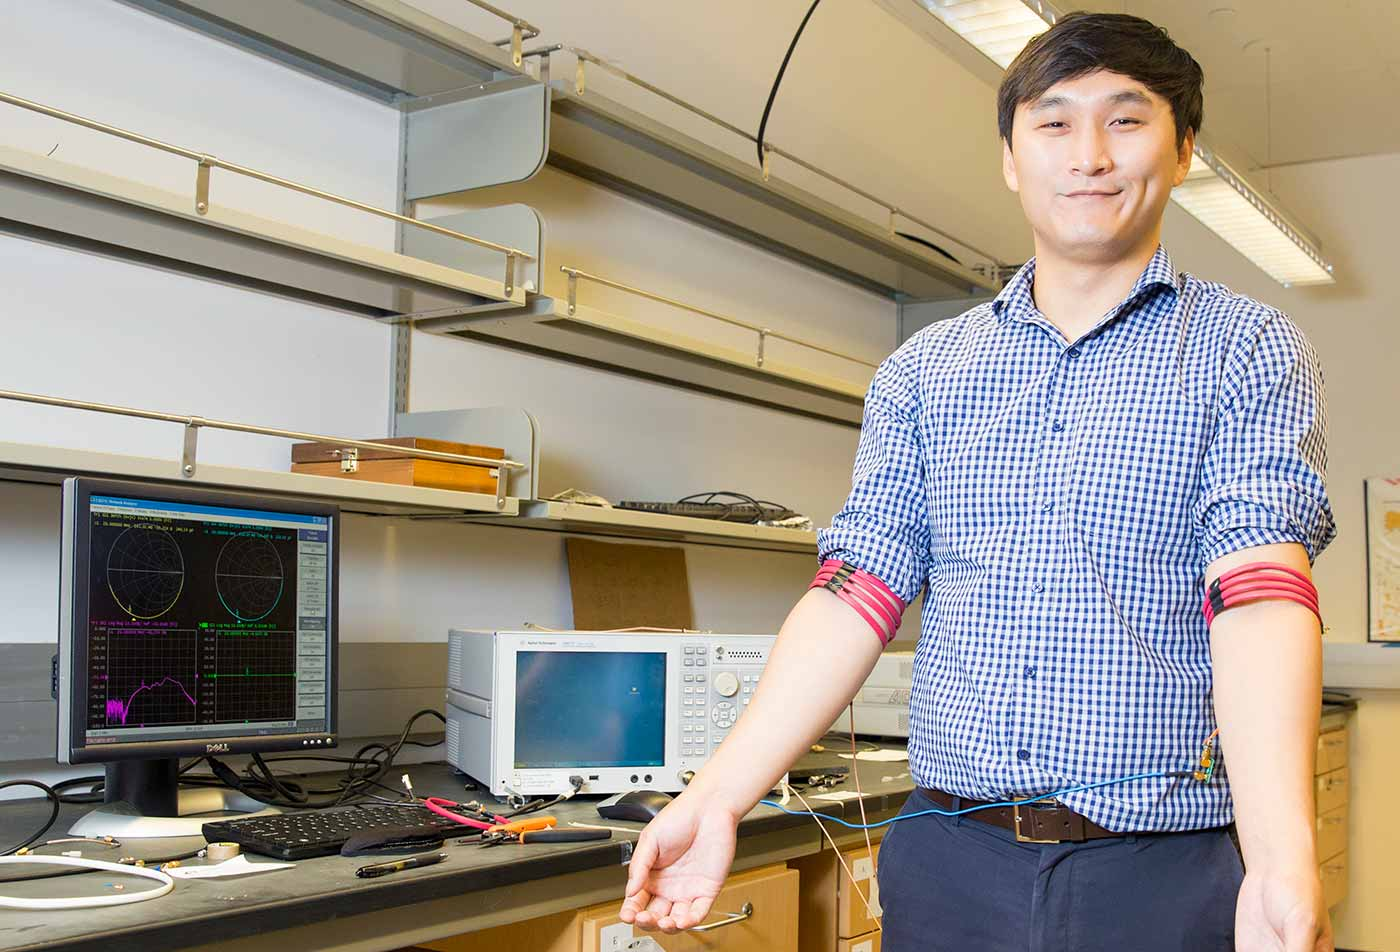 Image: Jiwoong Park, an electrical engineering Ph.D. student